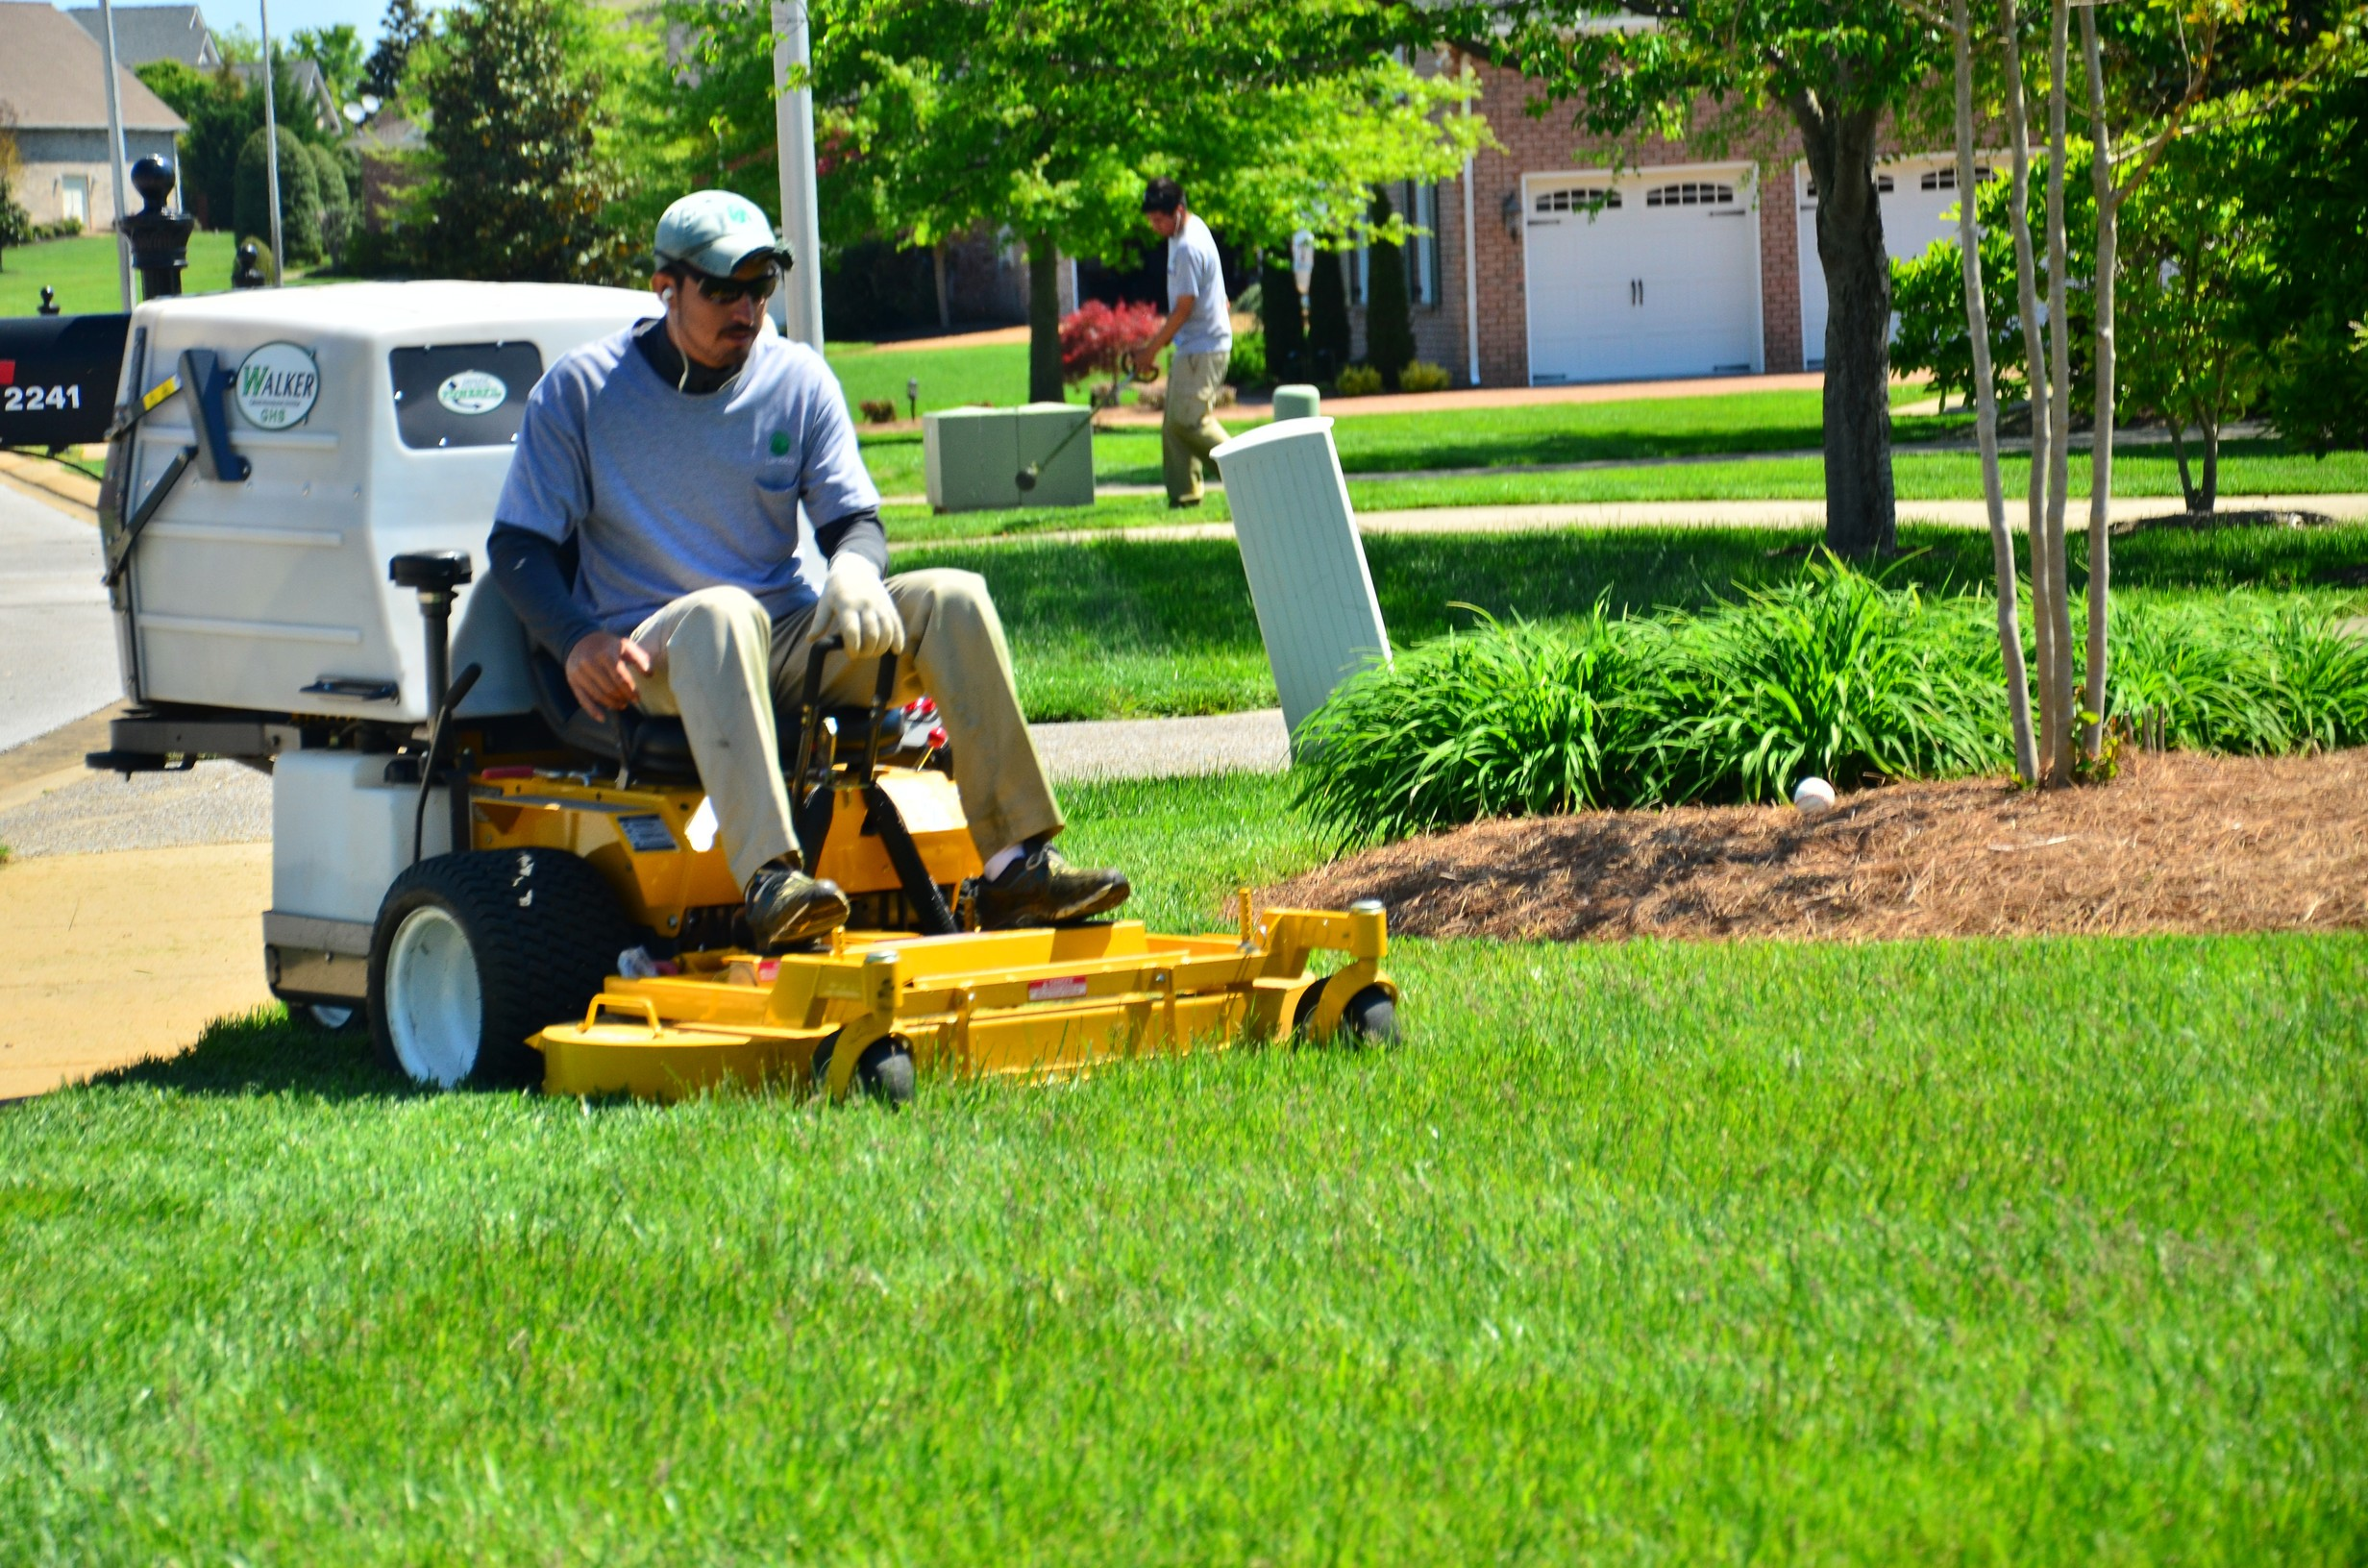 How to care for a lawn hirerush blog for Lawn mowing and garden maintenance